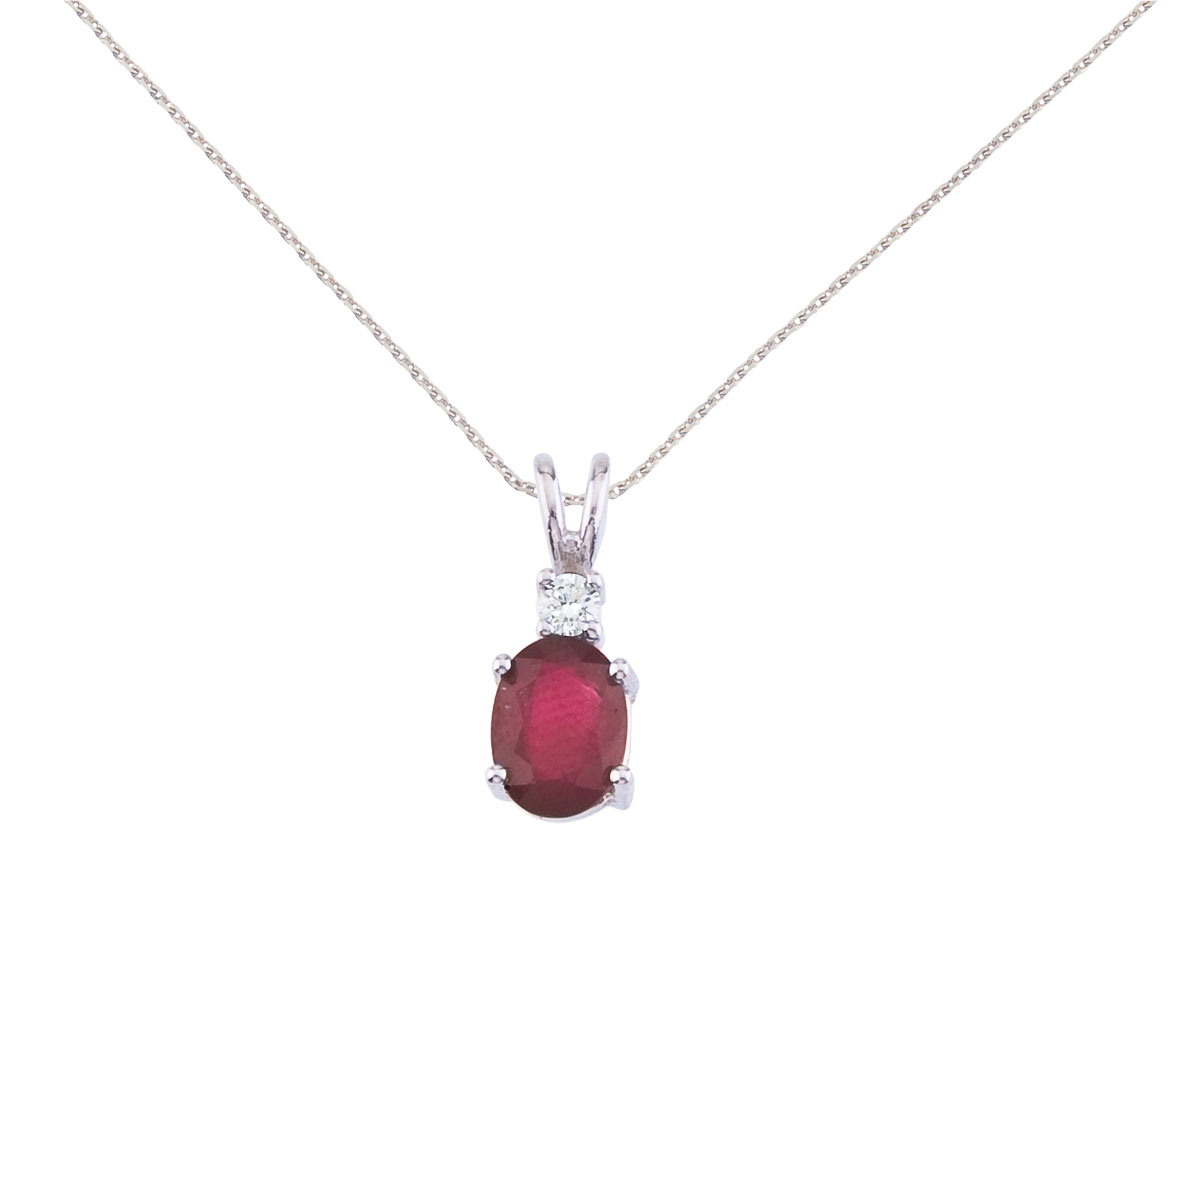 7x5 mm natural ruby and diamond pendant set in 14k white gold.